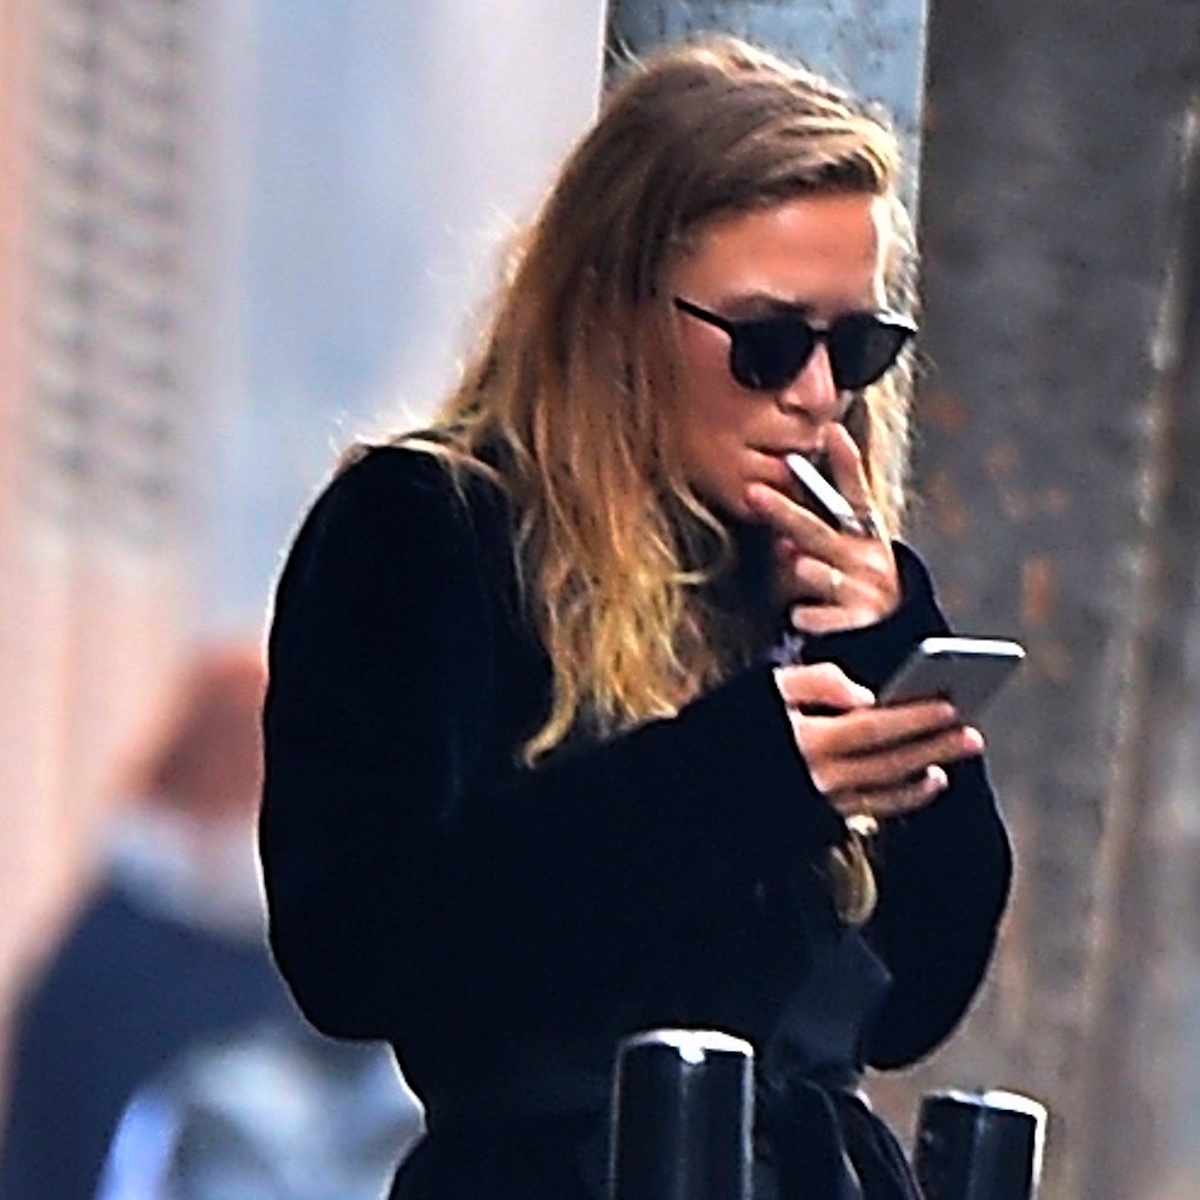 Olsen Twins Chainsmokers: Inside Their Crazy Cigarette Obsession